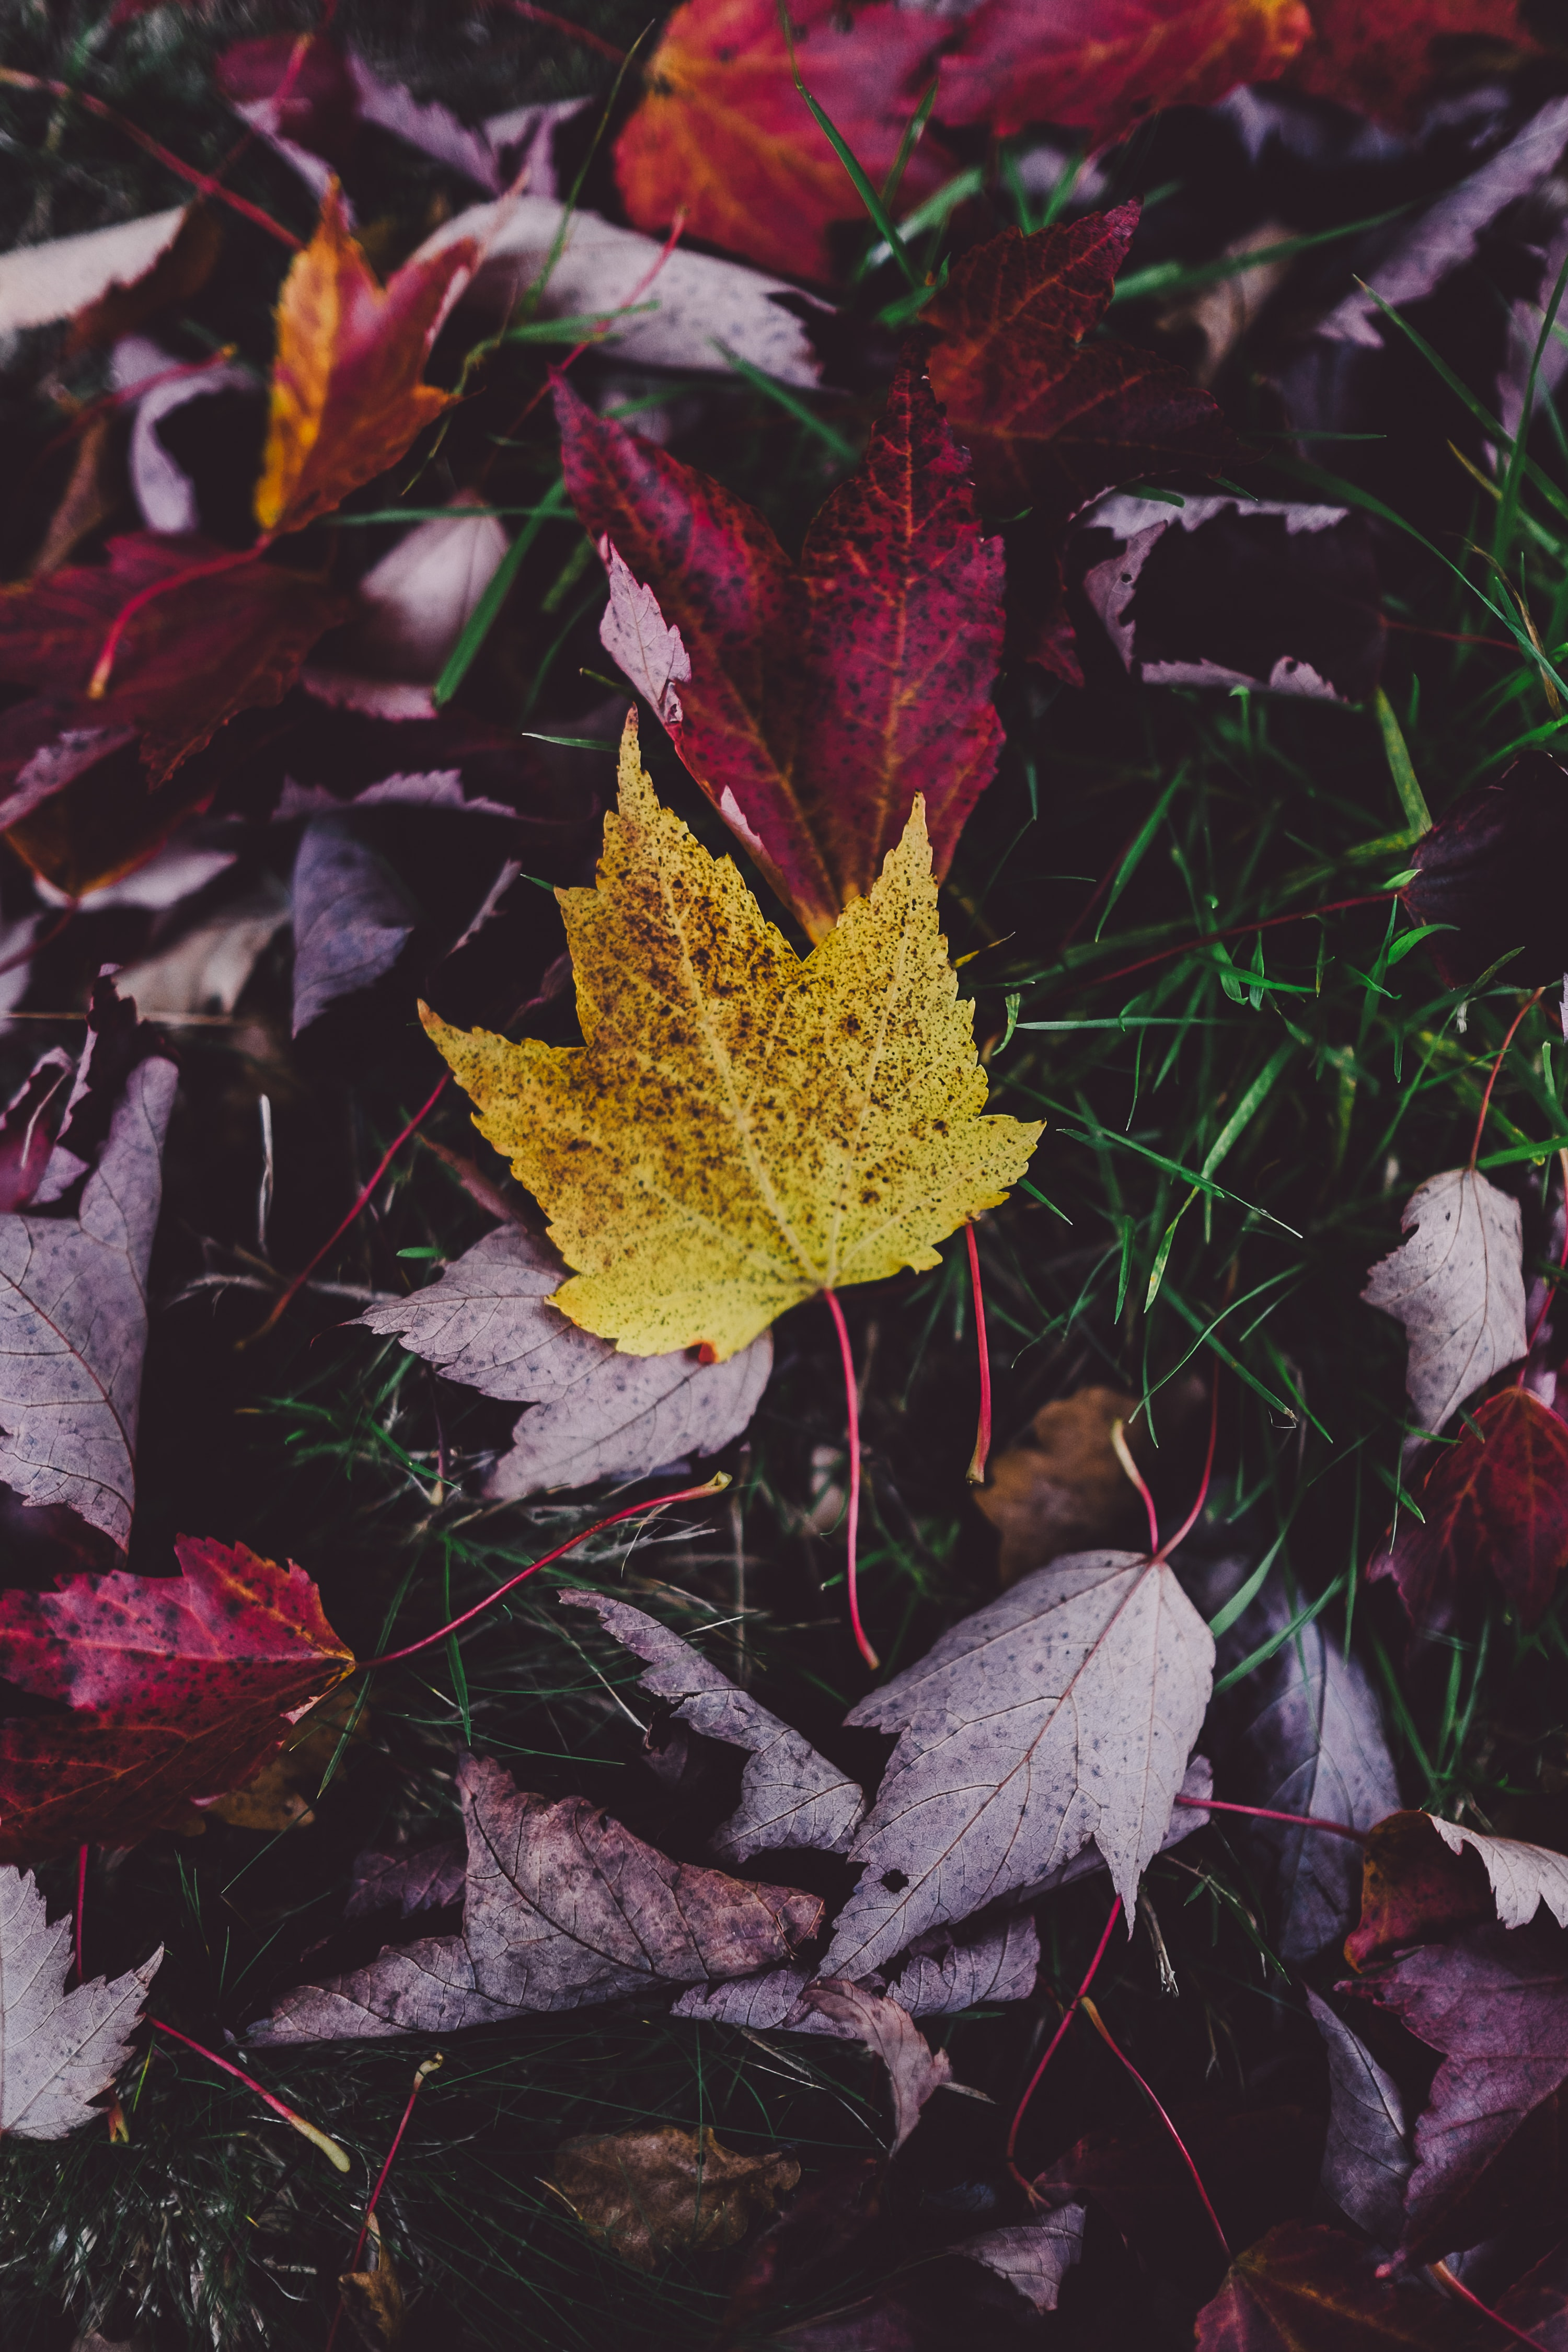 A yellow maple leaf among other red autumn leaves